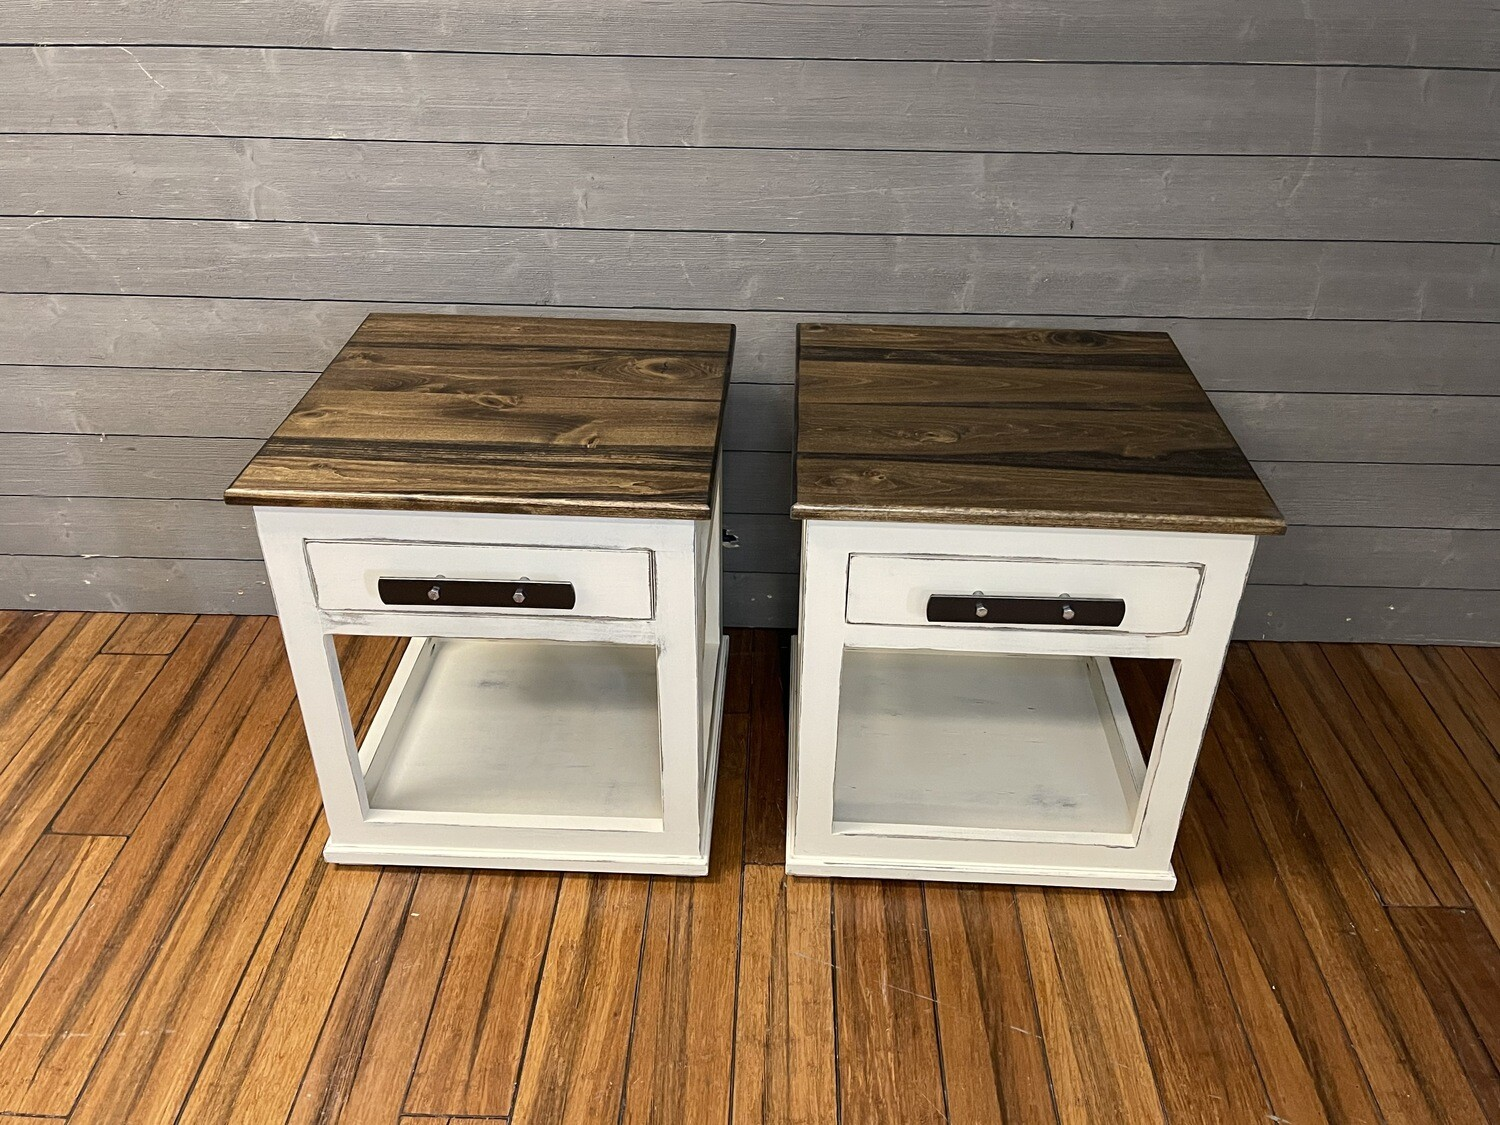 End Table Built-In Dog Bed